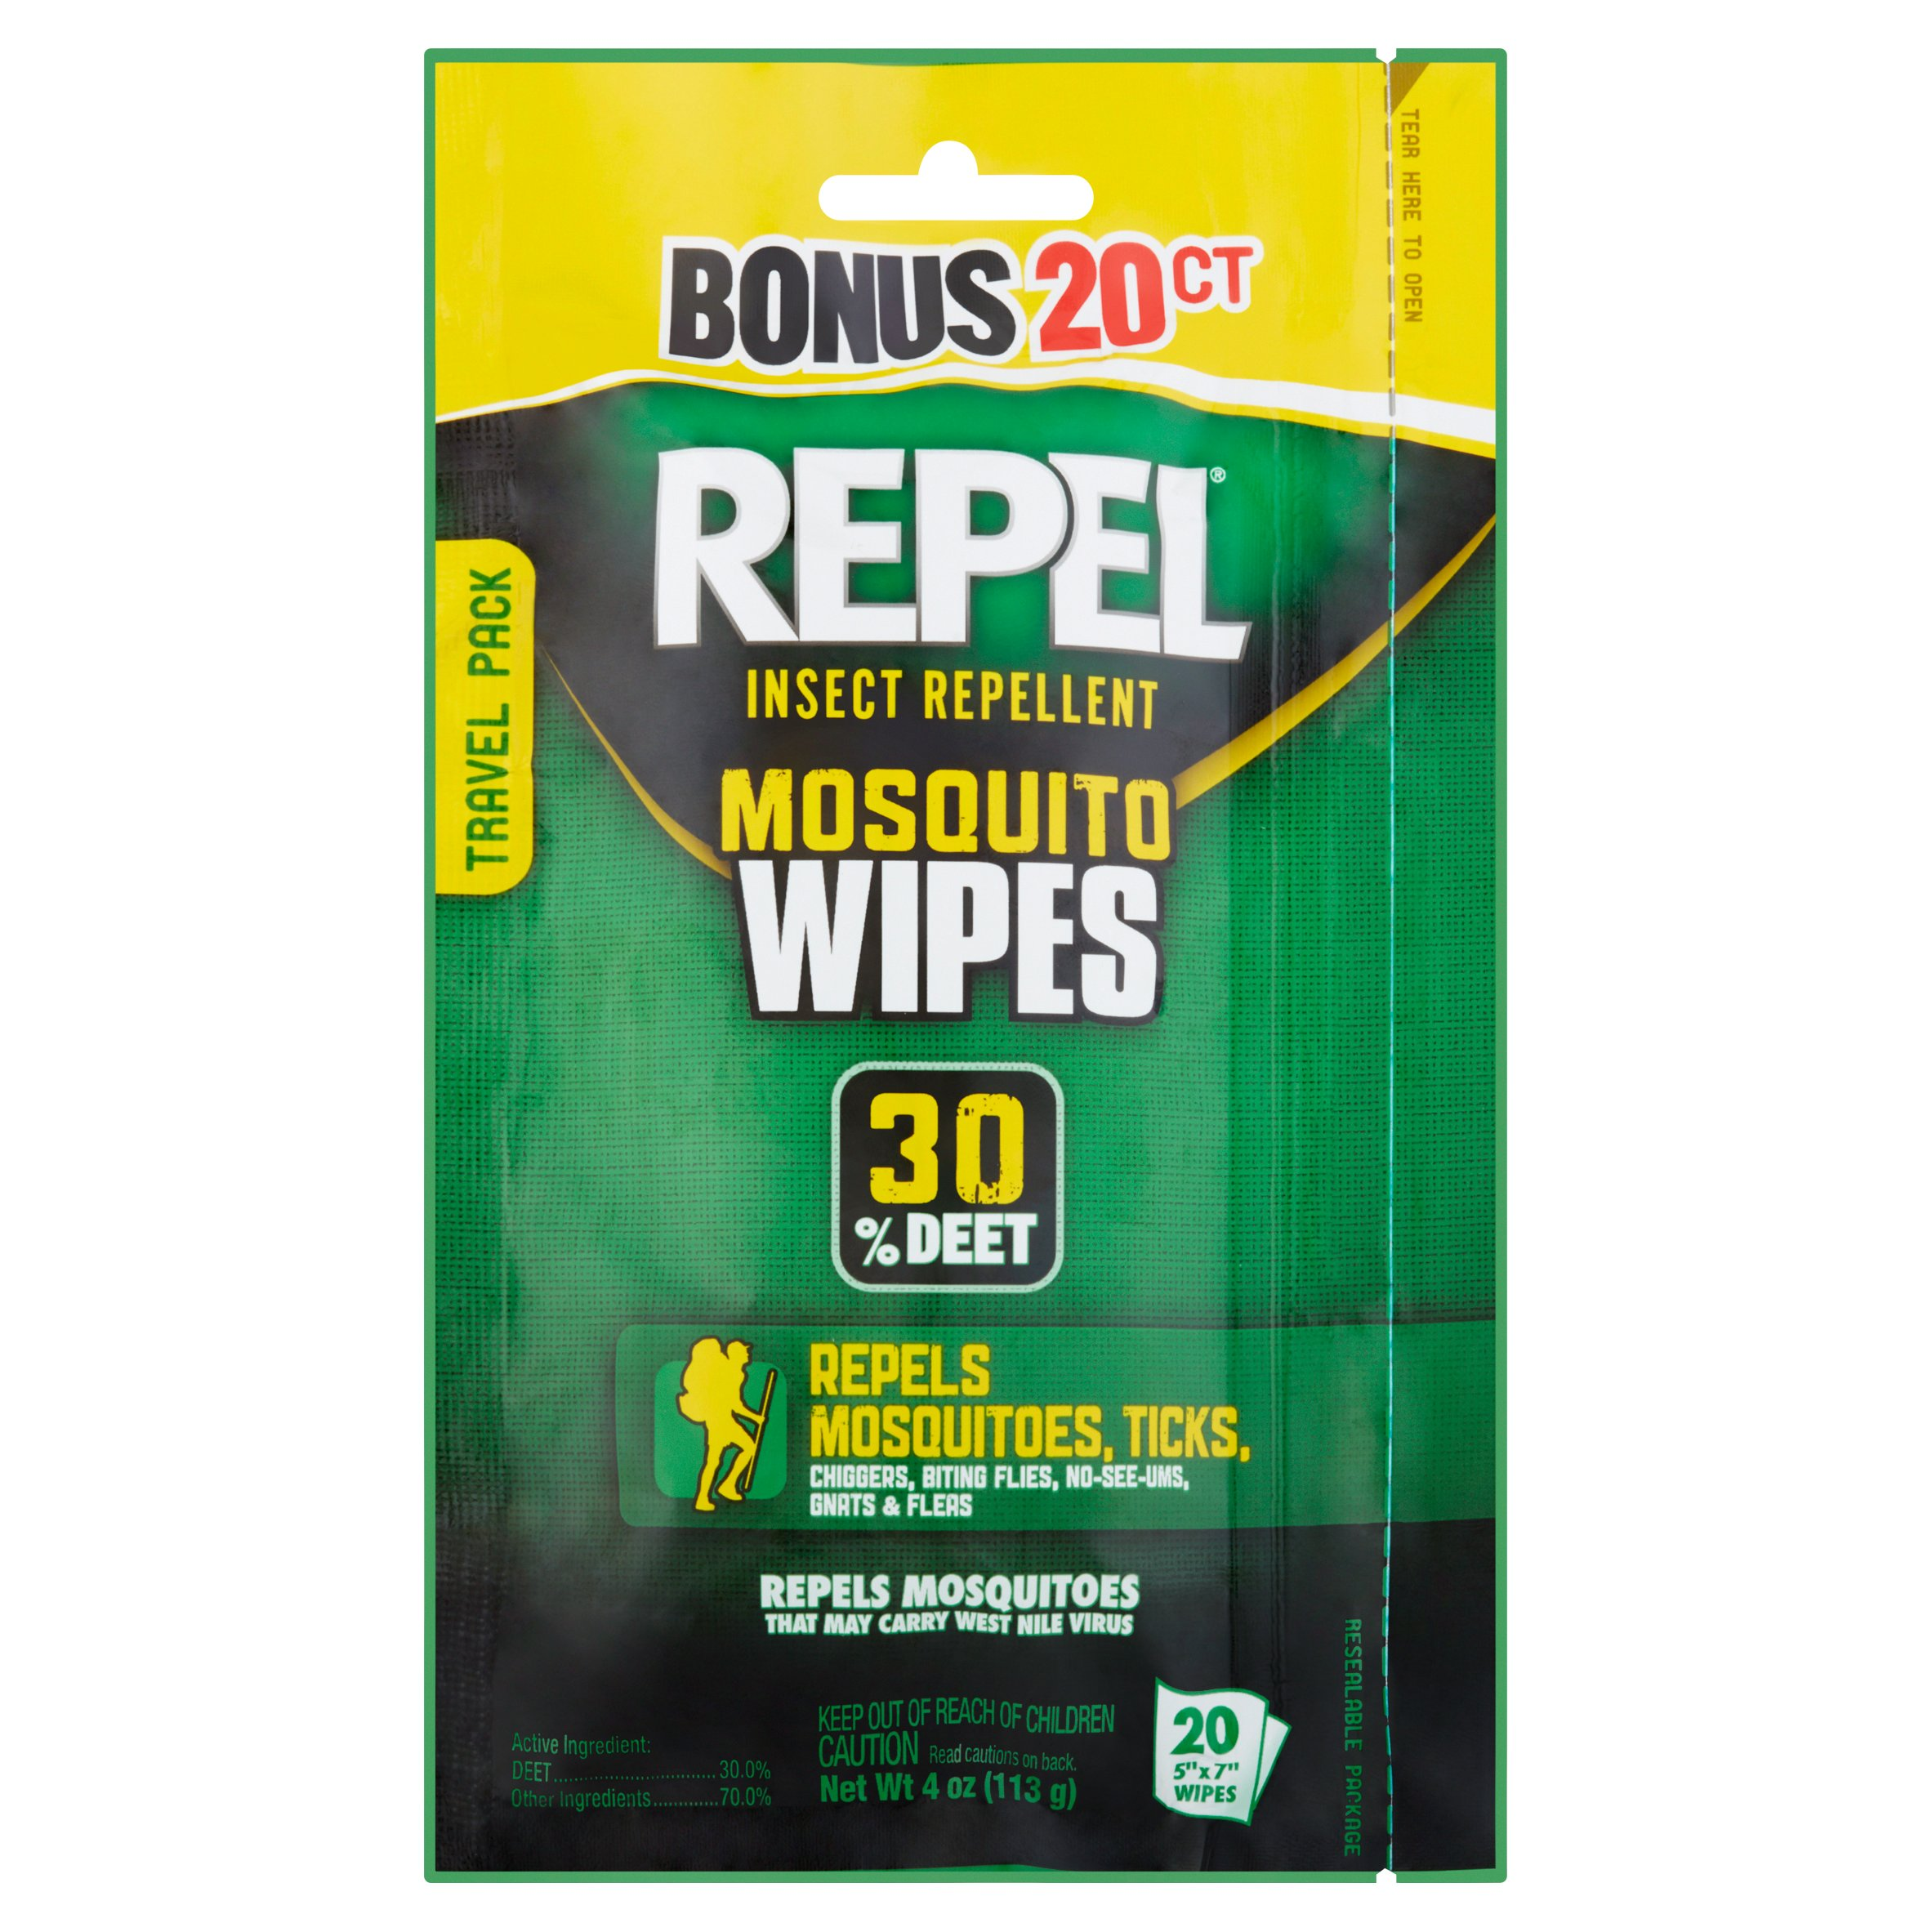 Repel Insect Repellent Mosquito Wipes 30% Deet, 20-Count, 4 oz by Spectrum Brands